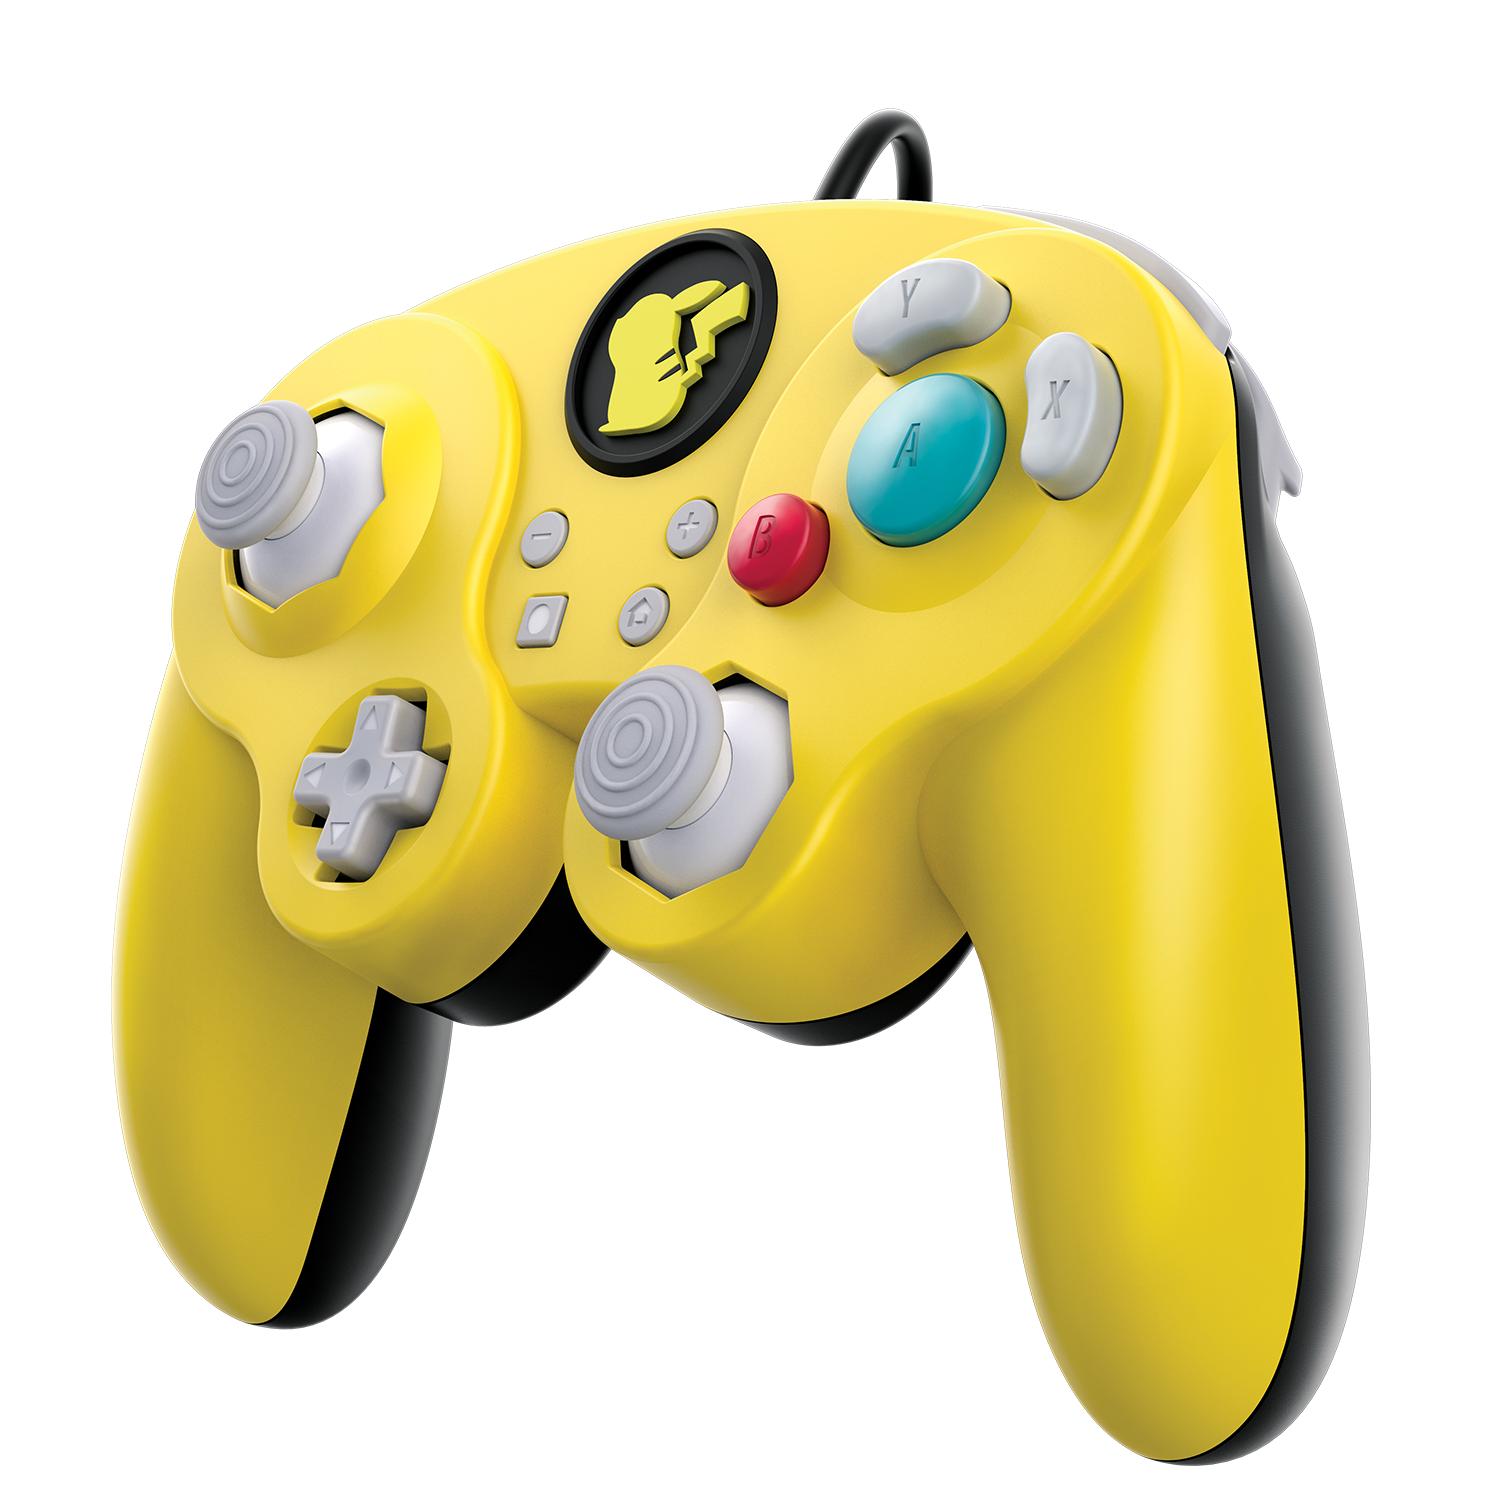 PDP reveals new line of GameCube inspired Switch Pro Controllers